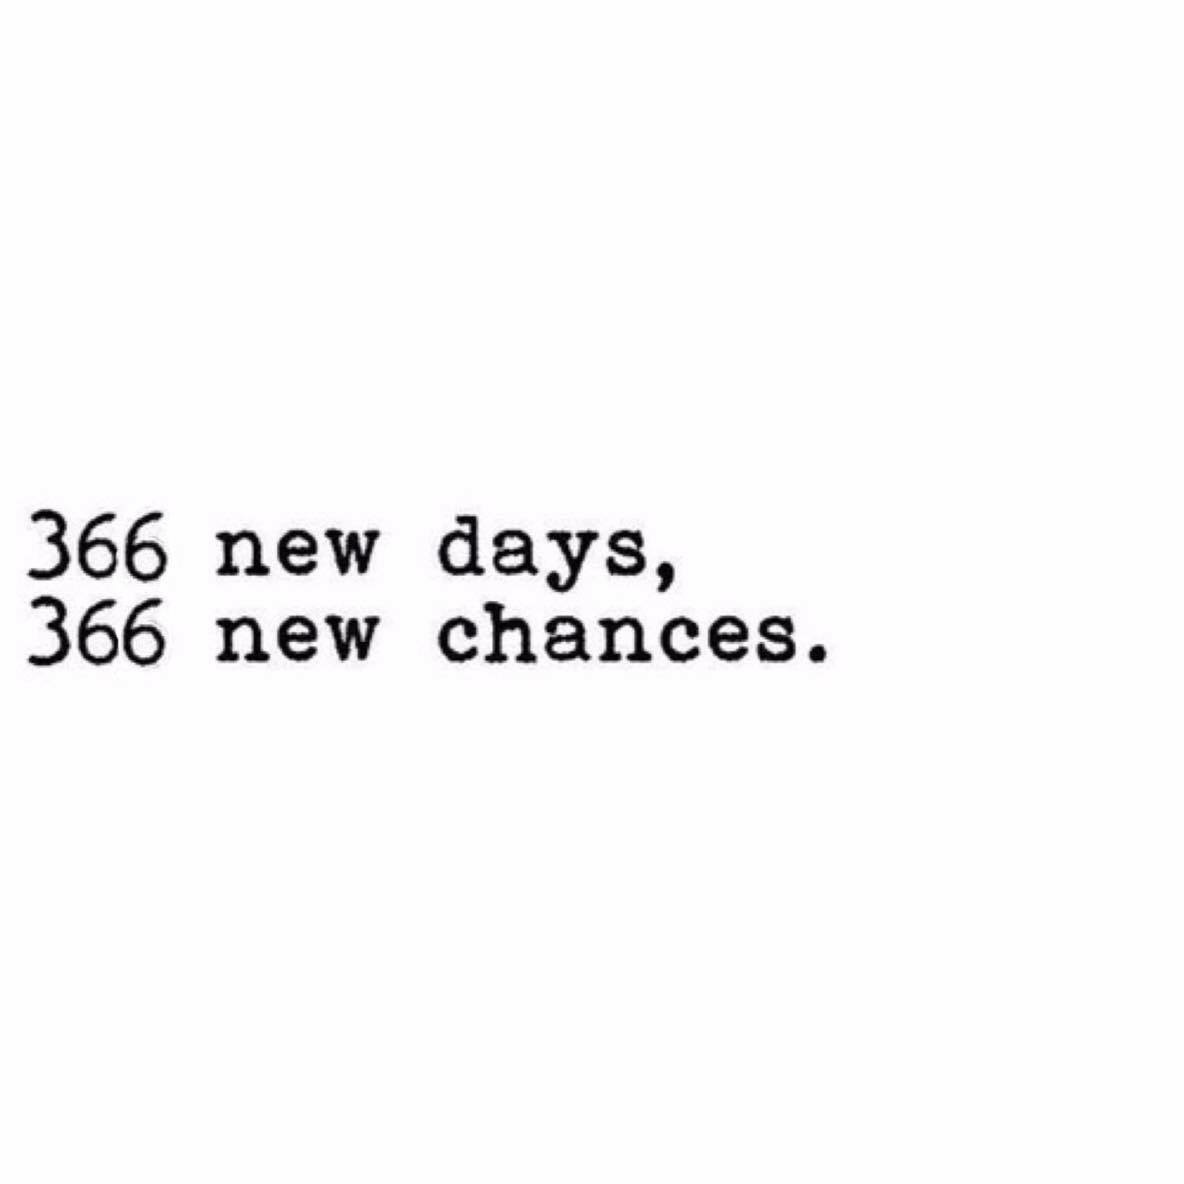 happy new year, hope, new year and new chances